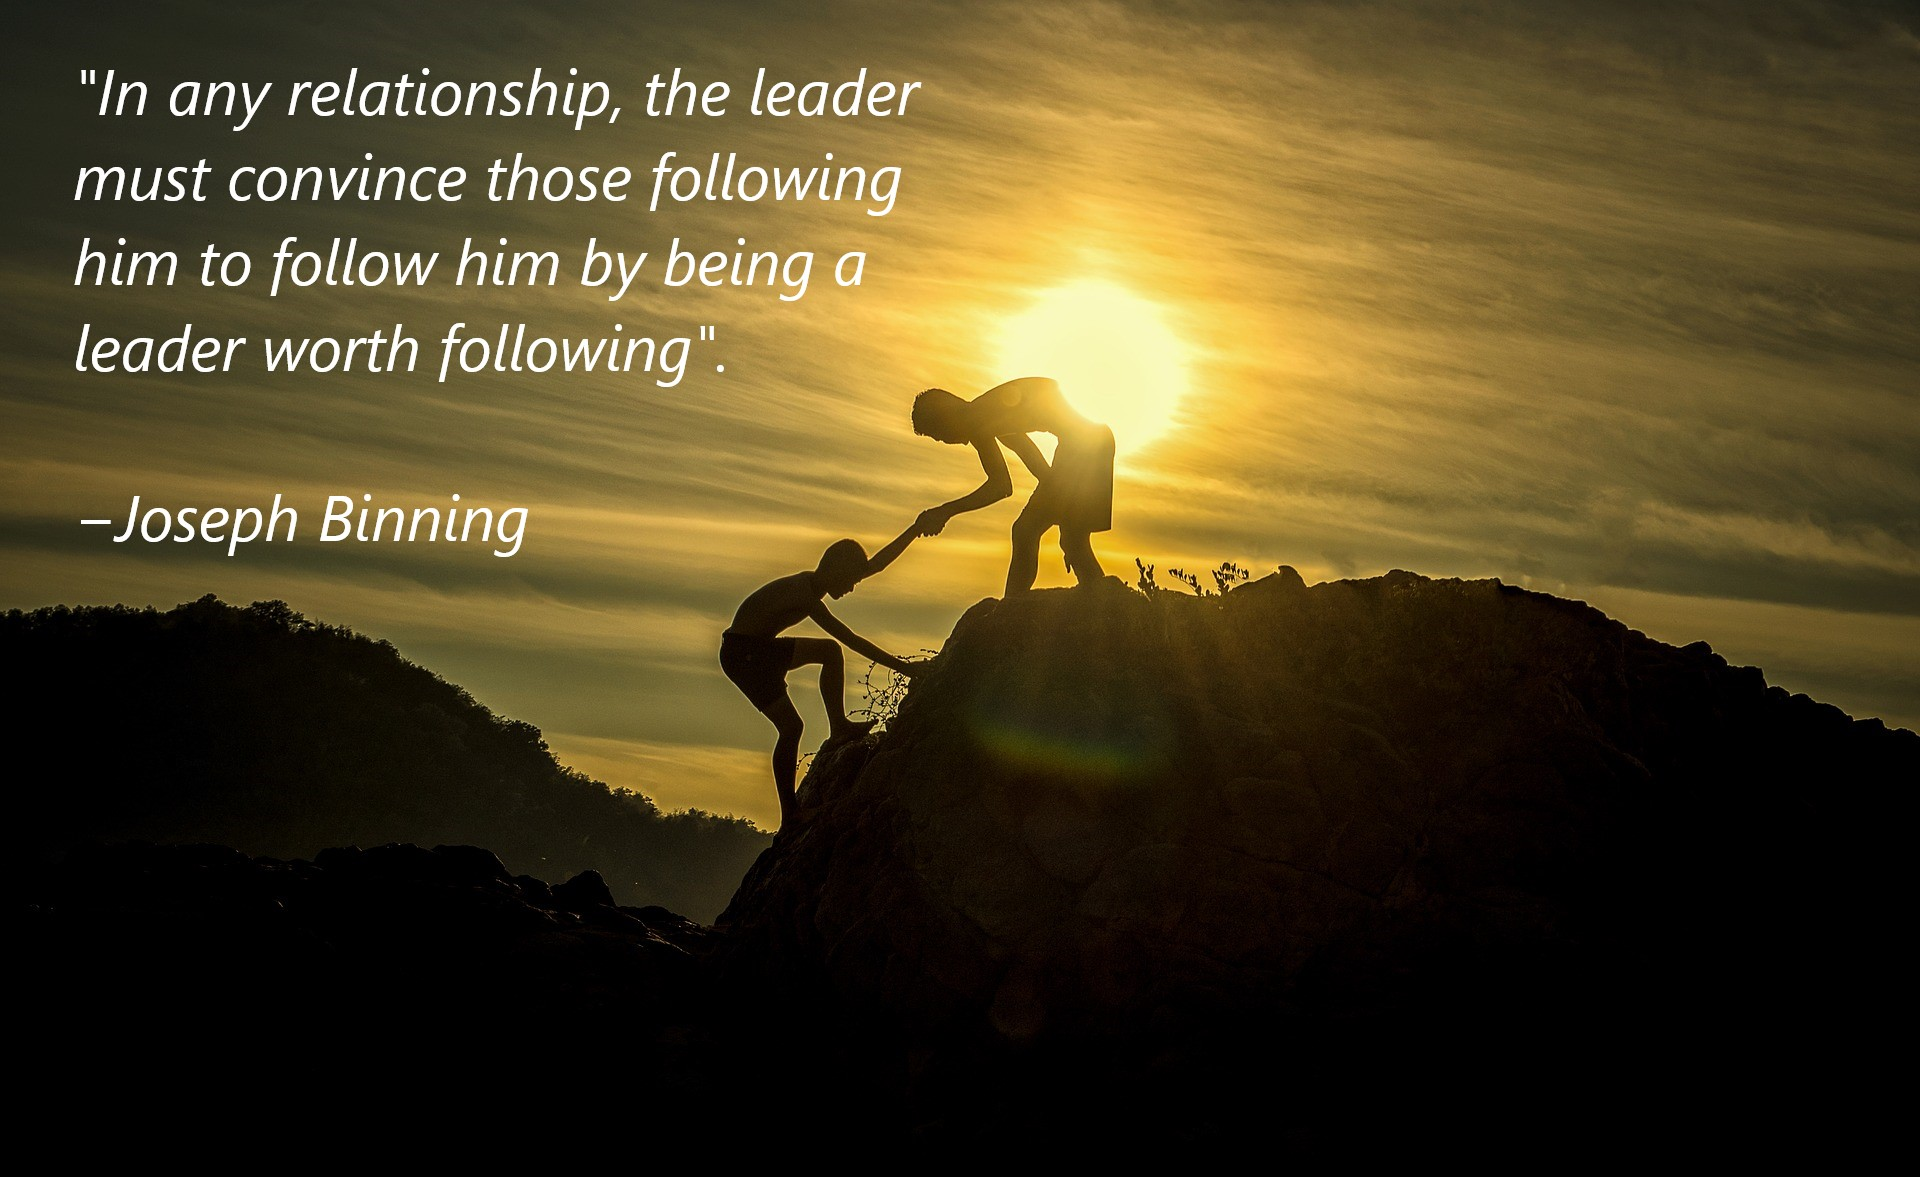 What Does A Good Leader Look Like in a Relationship?